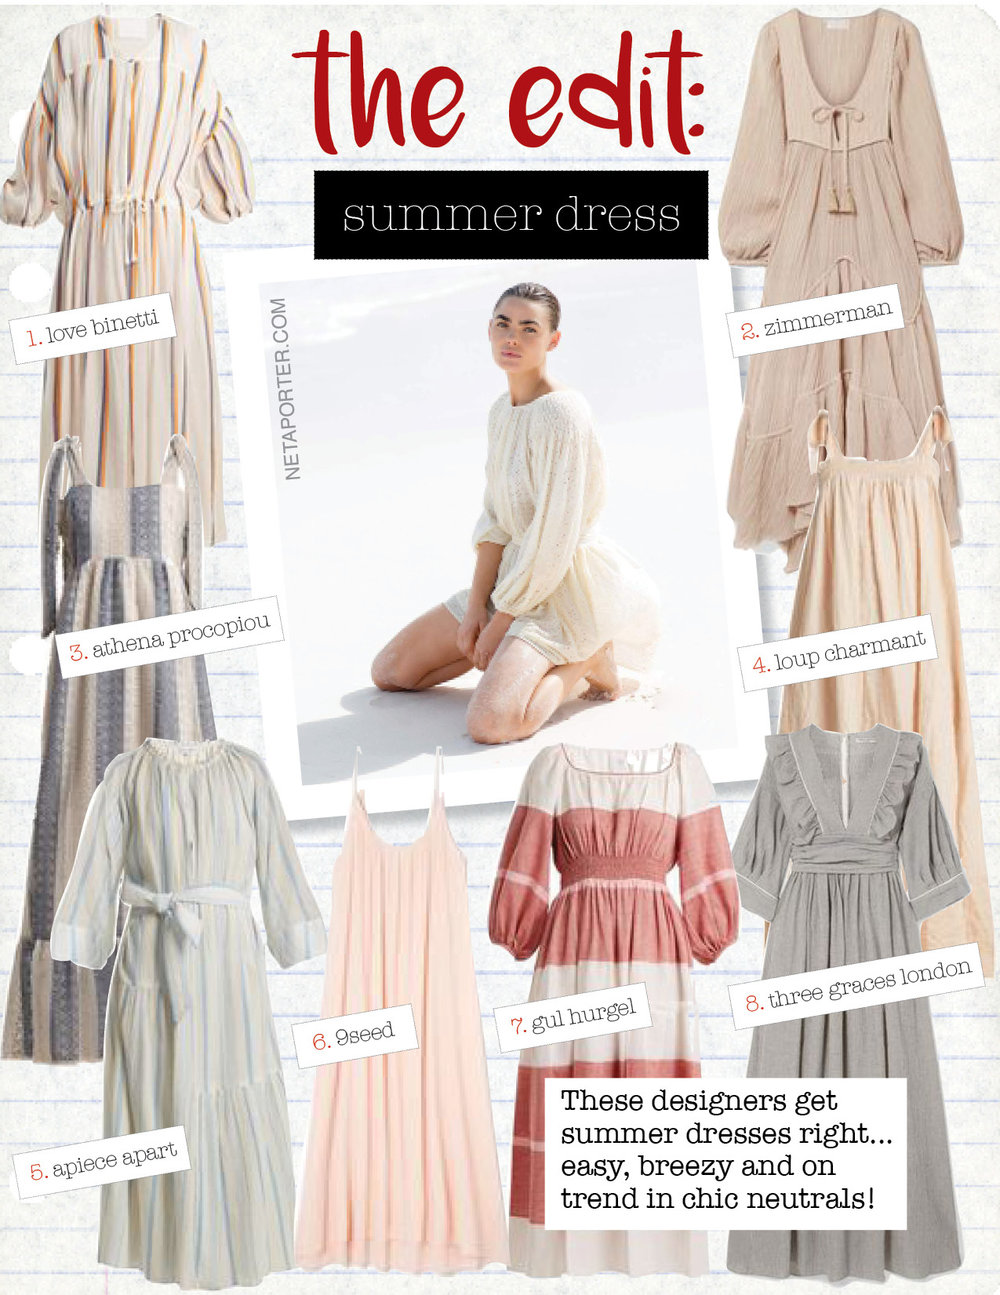 1. love binetti dropped shoulder cotton dress, $456,  matchesfashion.com  2. zimmerman bayou crinkled ramie and cotton-blend midi dress, $590,  net-a-porter.com  3. athena procopiou tie-shoulder lace dress, $1014,  matchesfashion.com  4. loup charmant bastille square-neck striped cotton dress, $608,  matchesfashion.com  5. apiece apart stella striped cotton dress, $484,  matchesfashion.com  6. 9seed tulum cotton maxi dress, $136,  9seed.com  7. gul hurgel puff-sleeved striped linen-blend dress, $1008,  matchesfashion.com  8. three graces london adeline striped cotton-blend maxi dress, $890,  net-a-porter.com